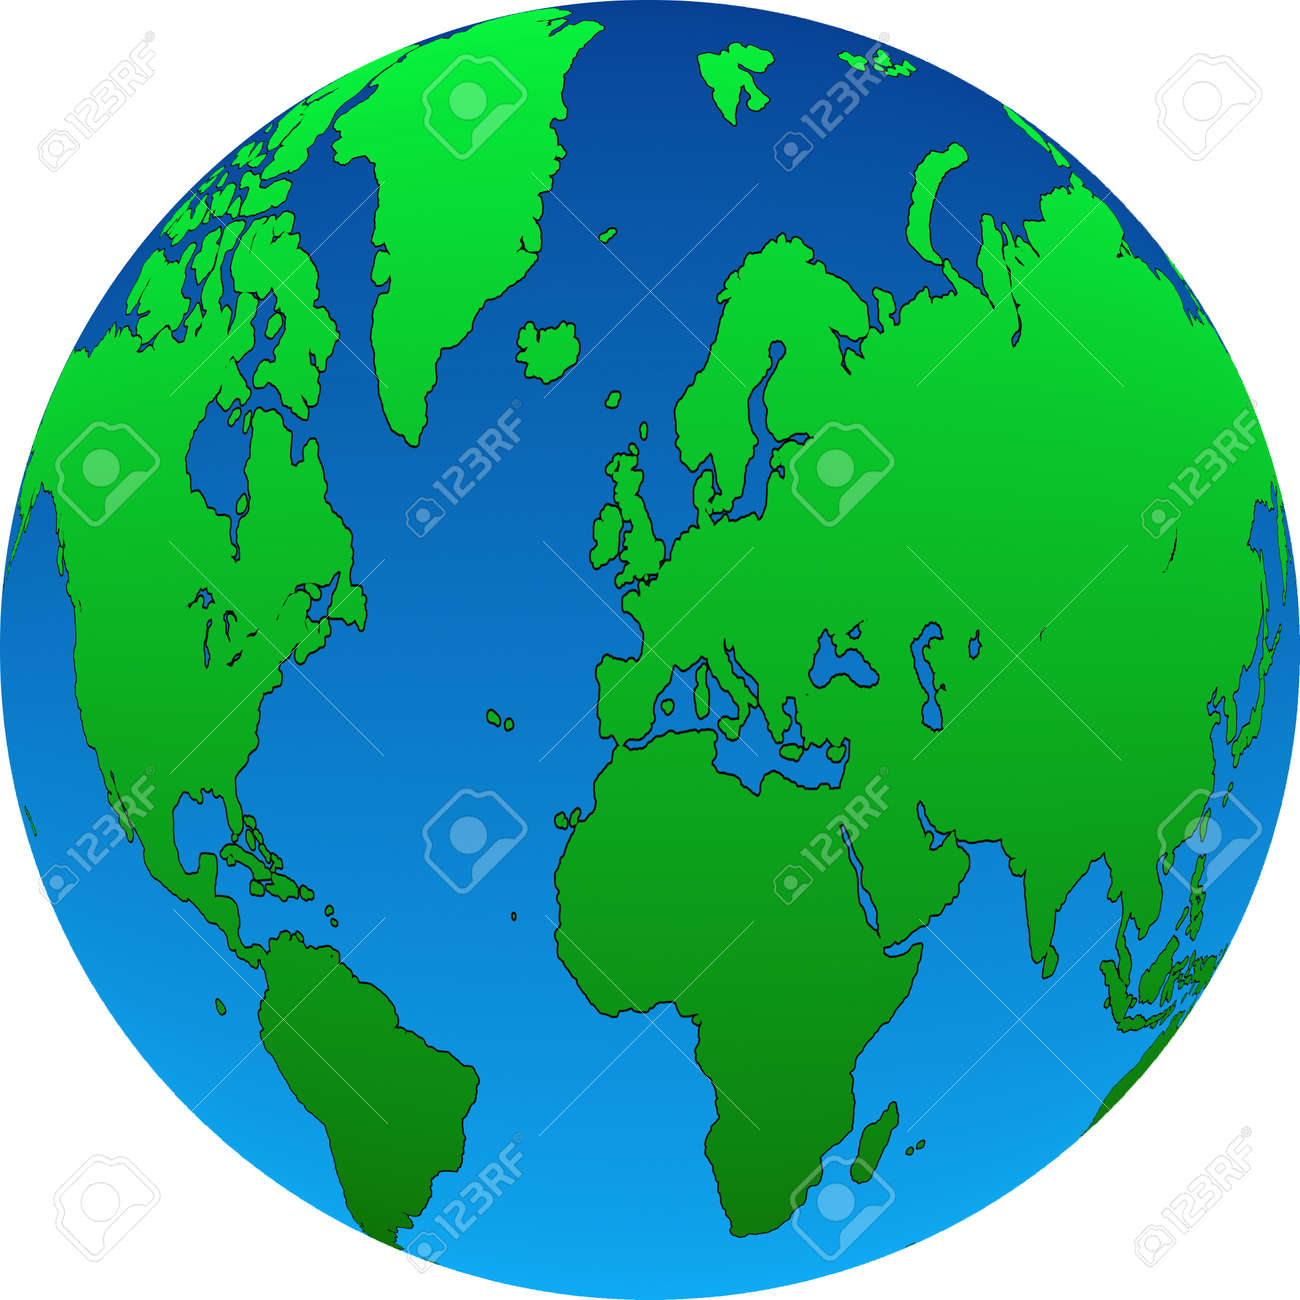 A Map Of The World In Globe Form Made Up From Two Gradients Stock - Map of the globe